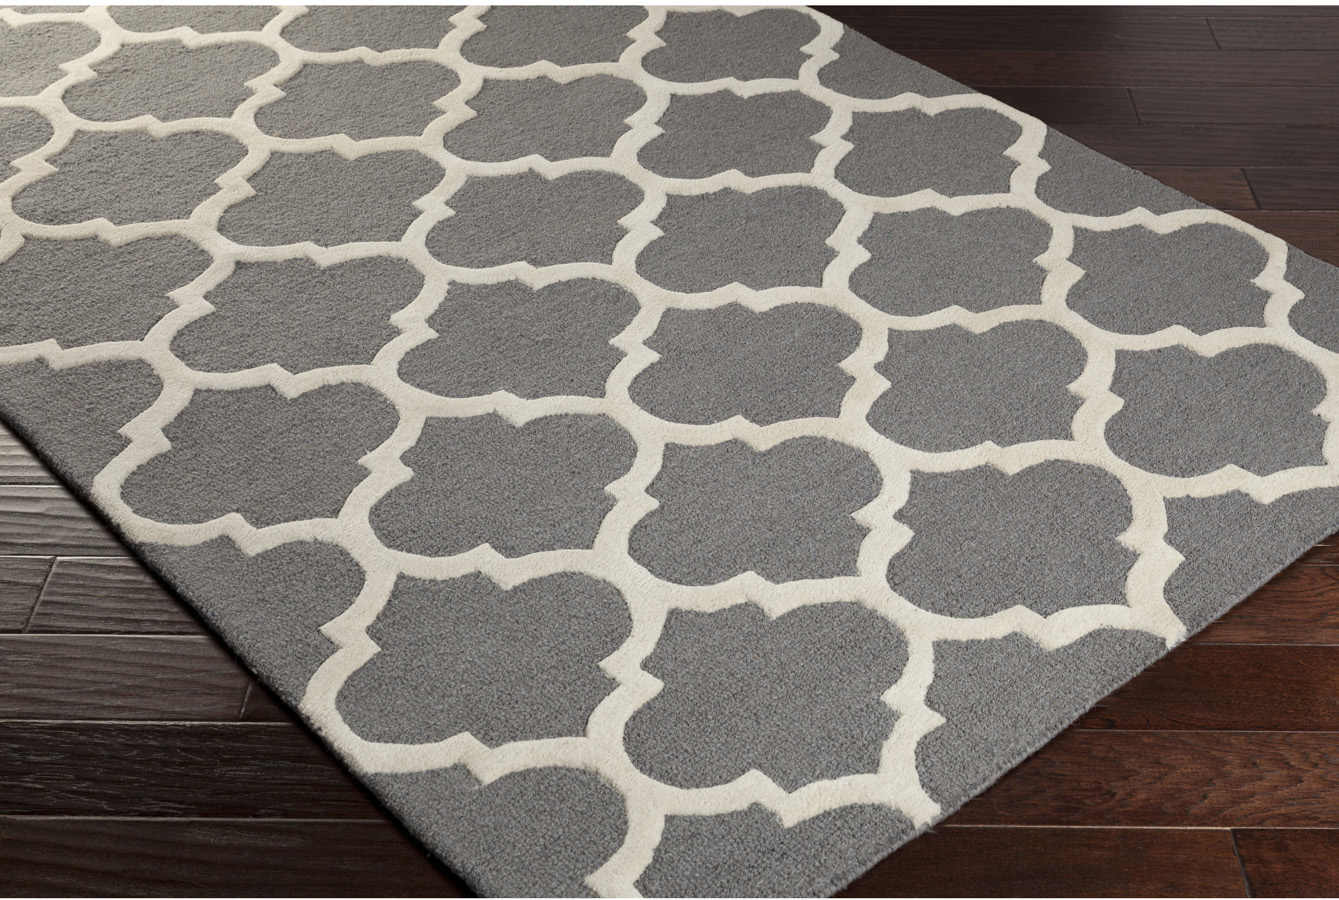 Artistic Weavers Pollack Stella Awah2033 Greywhite Area Rug. Castle Remodeling. Gravel Landscaping. Green Console Table. Landscape Design Utah. Designing A Bathroom. Awesome Kitchens. Cool Home Gadgets. Meditation Room